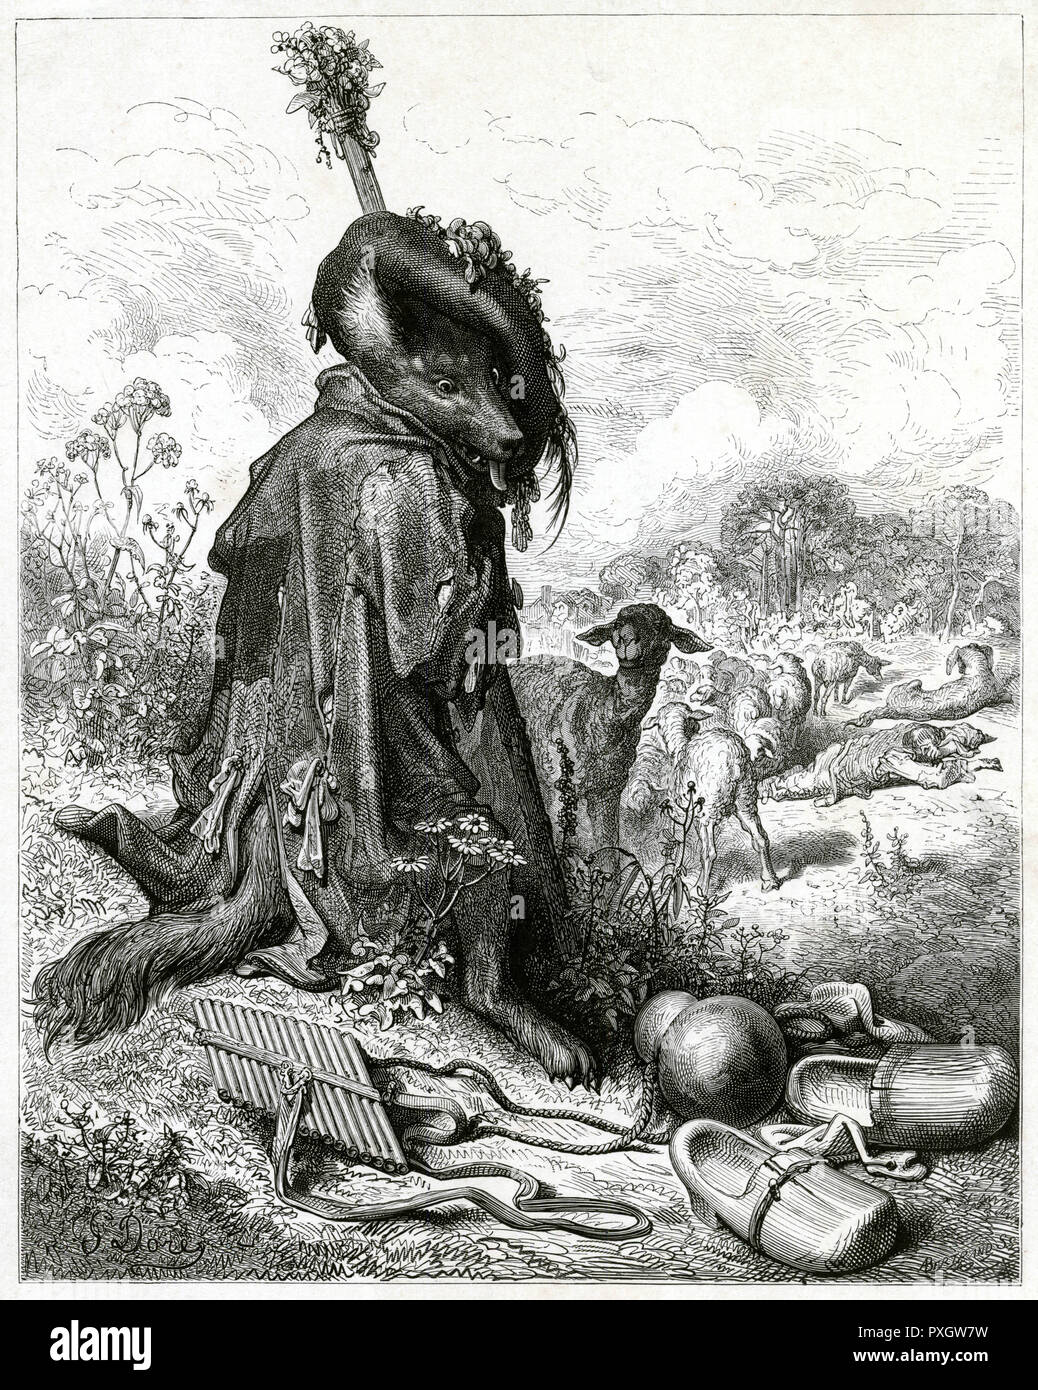 'THE WOLF AS SHEPHERD' One of Dore's finest illust- -rations, simply taken at face value, and at the same time a powerful allegory of brute force hiding its brutality. - Stock Image